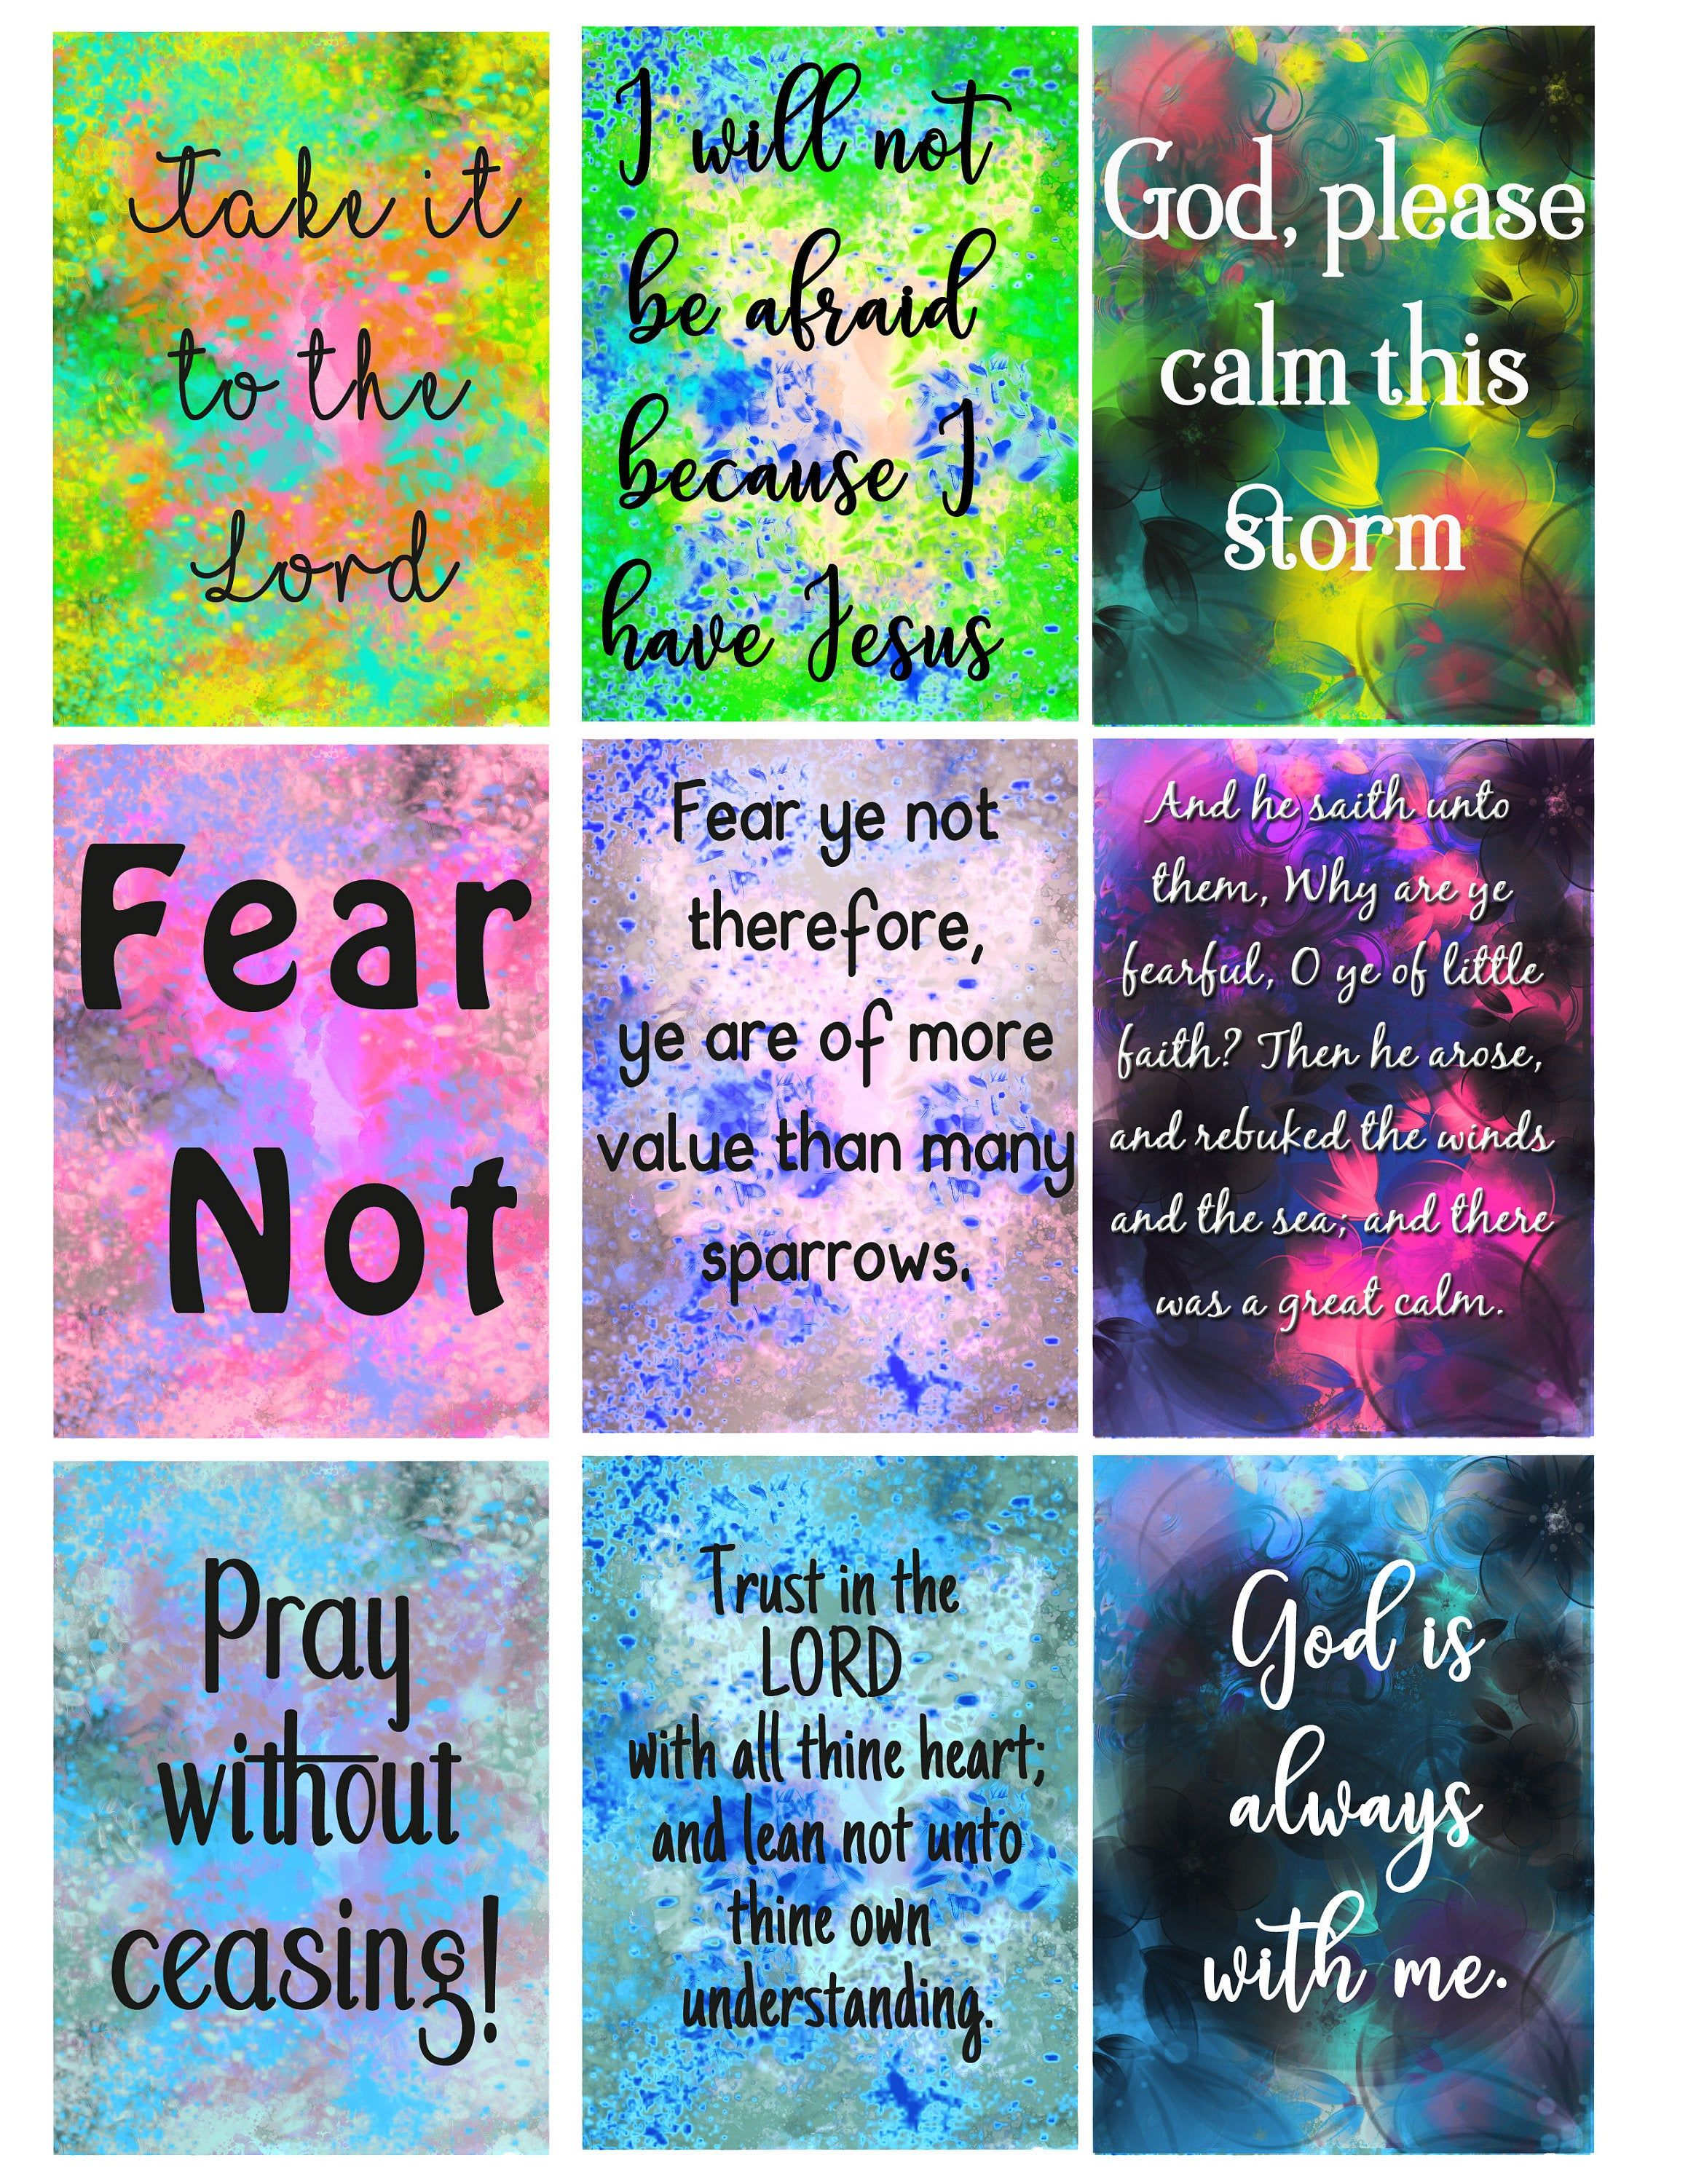 Fear And Faith Affirmation Affirmation Cards God Is With Etsy In 2021 Affirmation Cards Christian Cards Verses For Cards